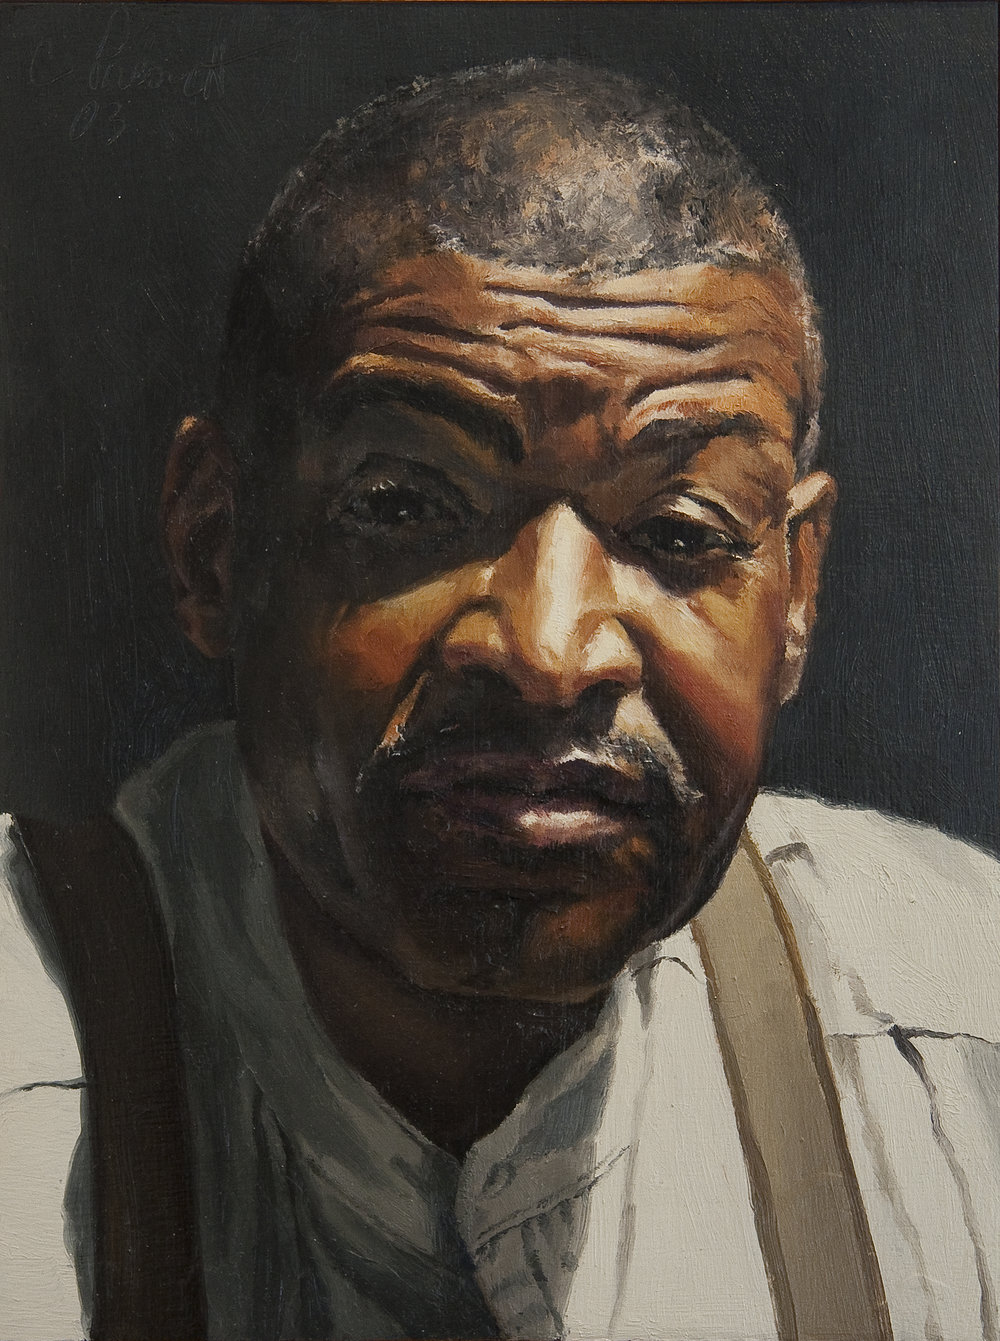 """Under the Scrutiny of Barry Davis , Oil on Wood Panel, 2003, 12"""" x 9"""", Private Collection"""